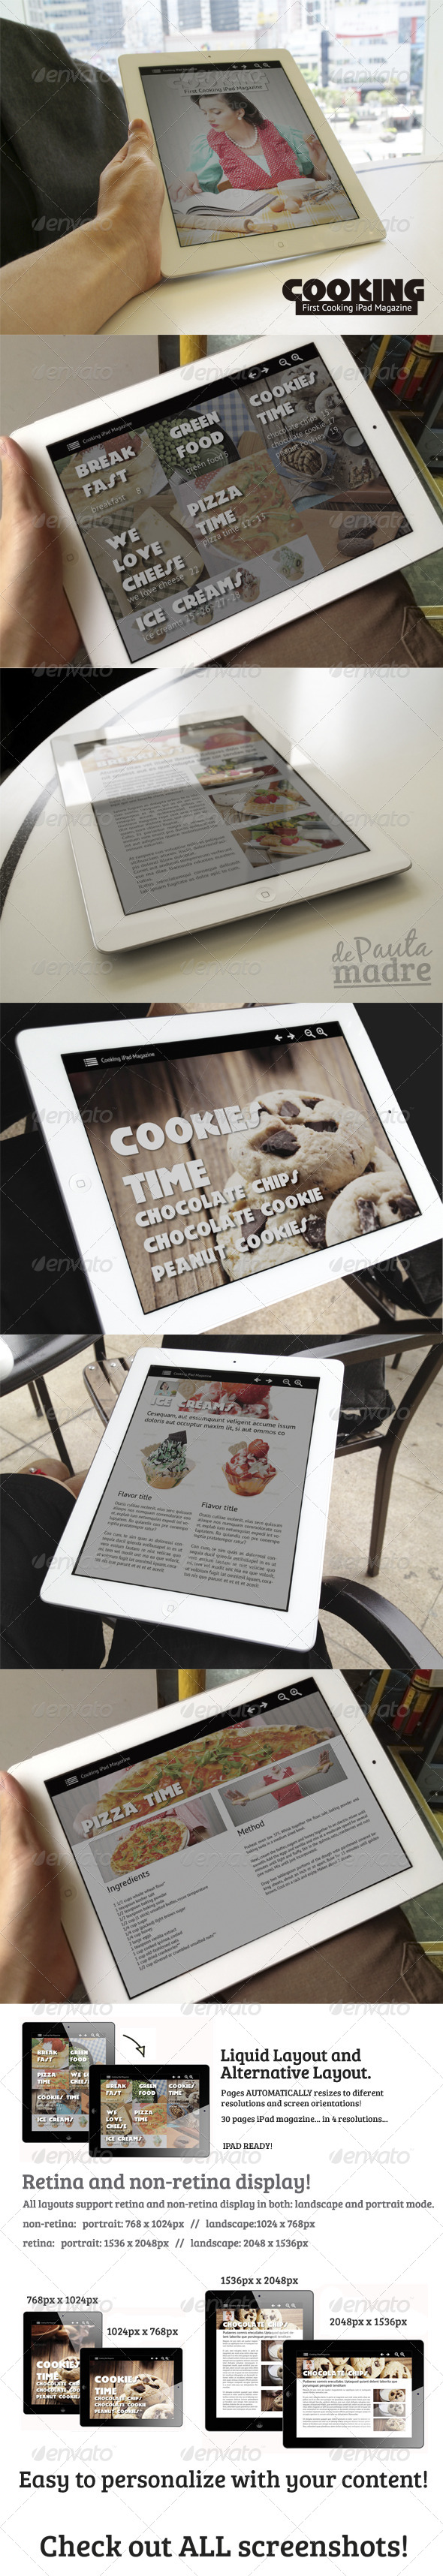 GraphicRiver Cooking iPad Magazine in 4 resolutions 4734170